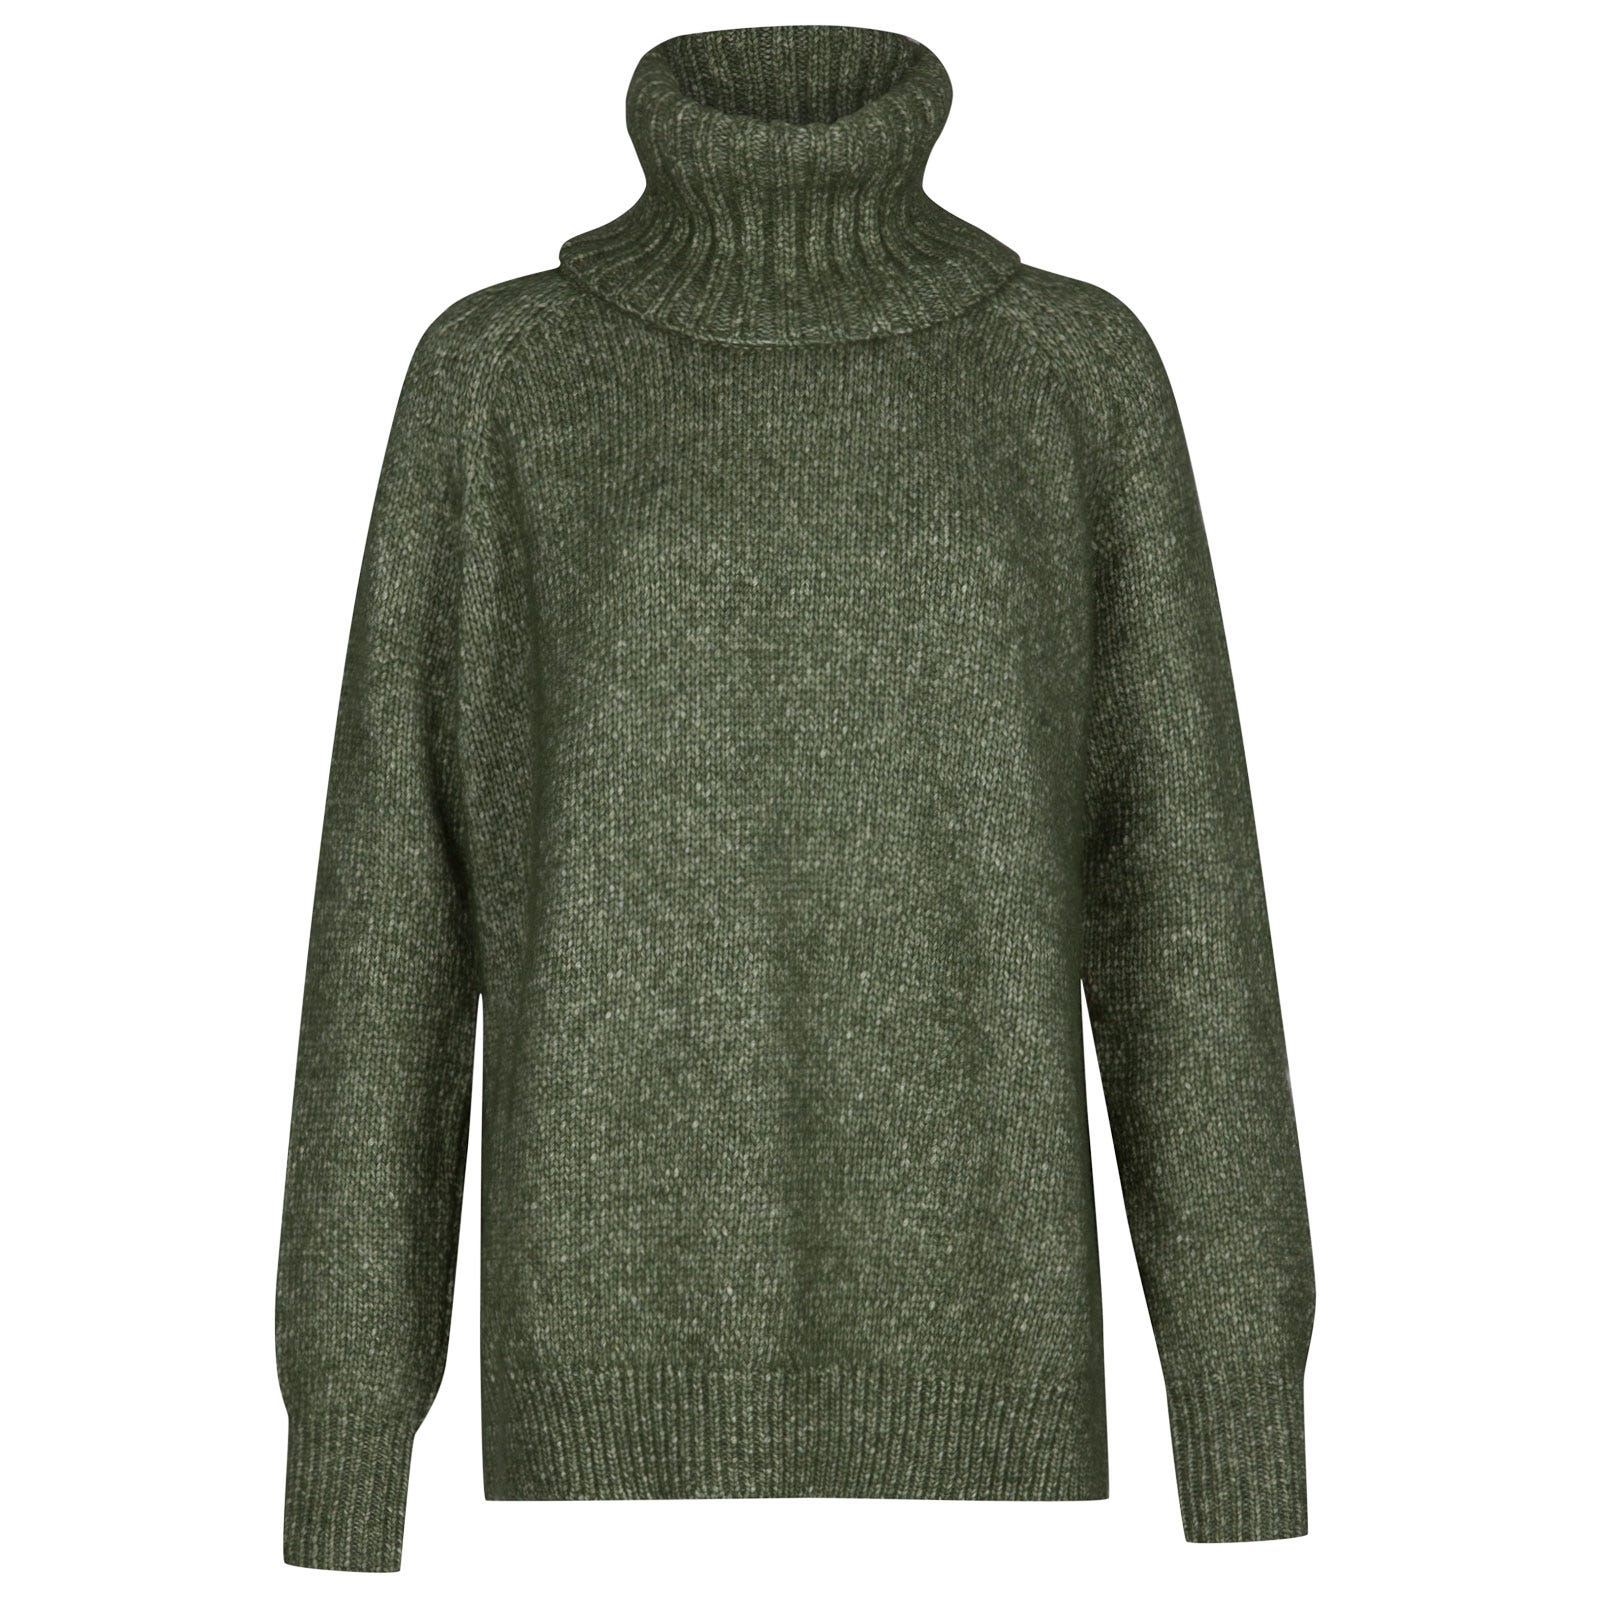 John Smedley Morar Alpaca, Wool & Cotton Sweater in Kielder Green-XL